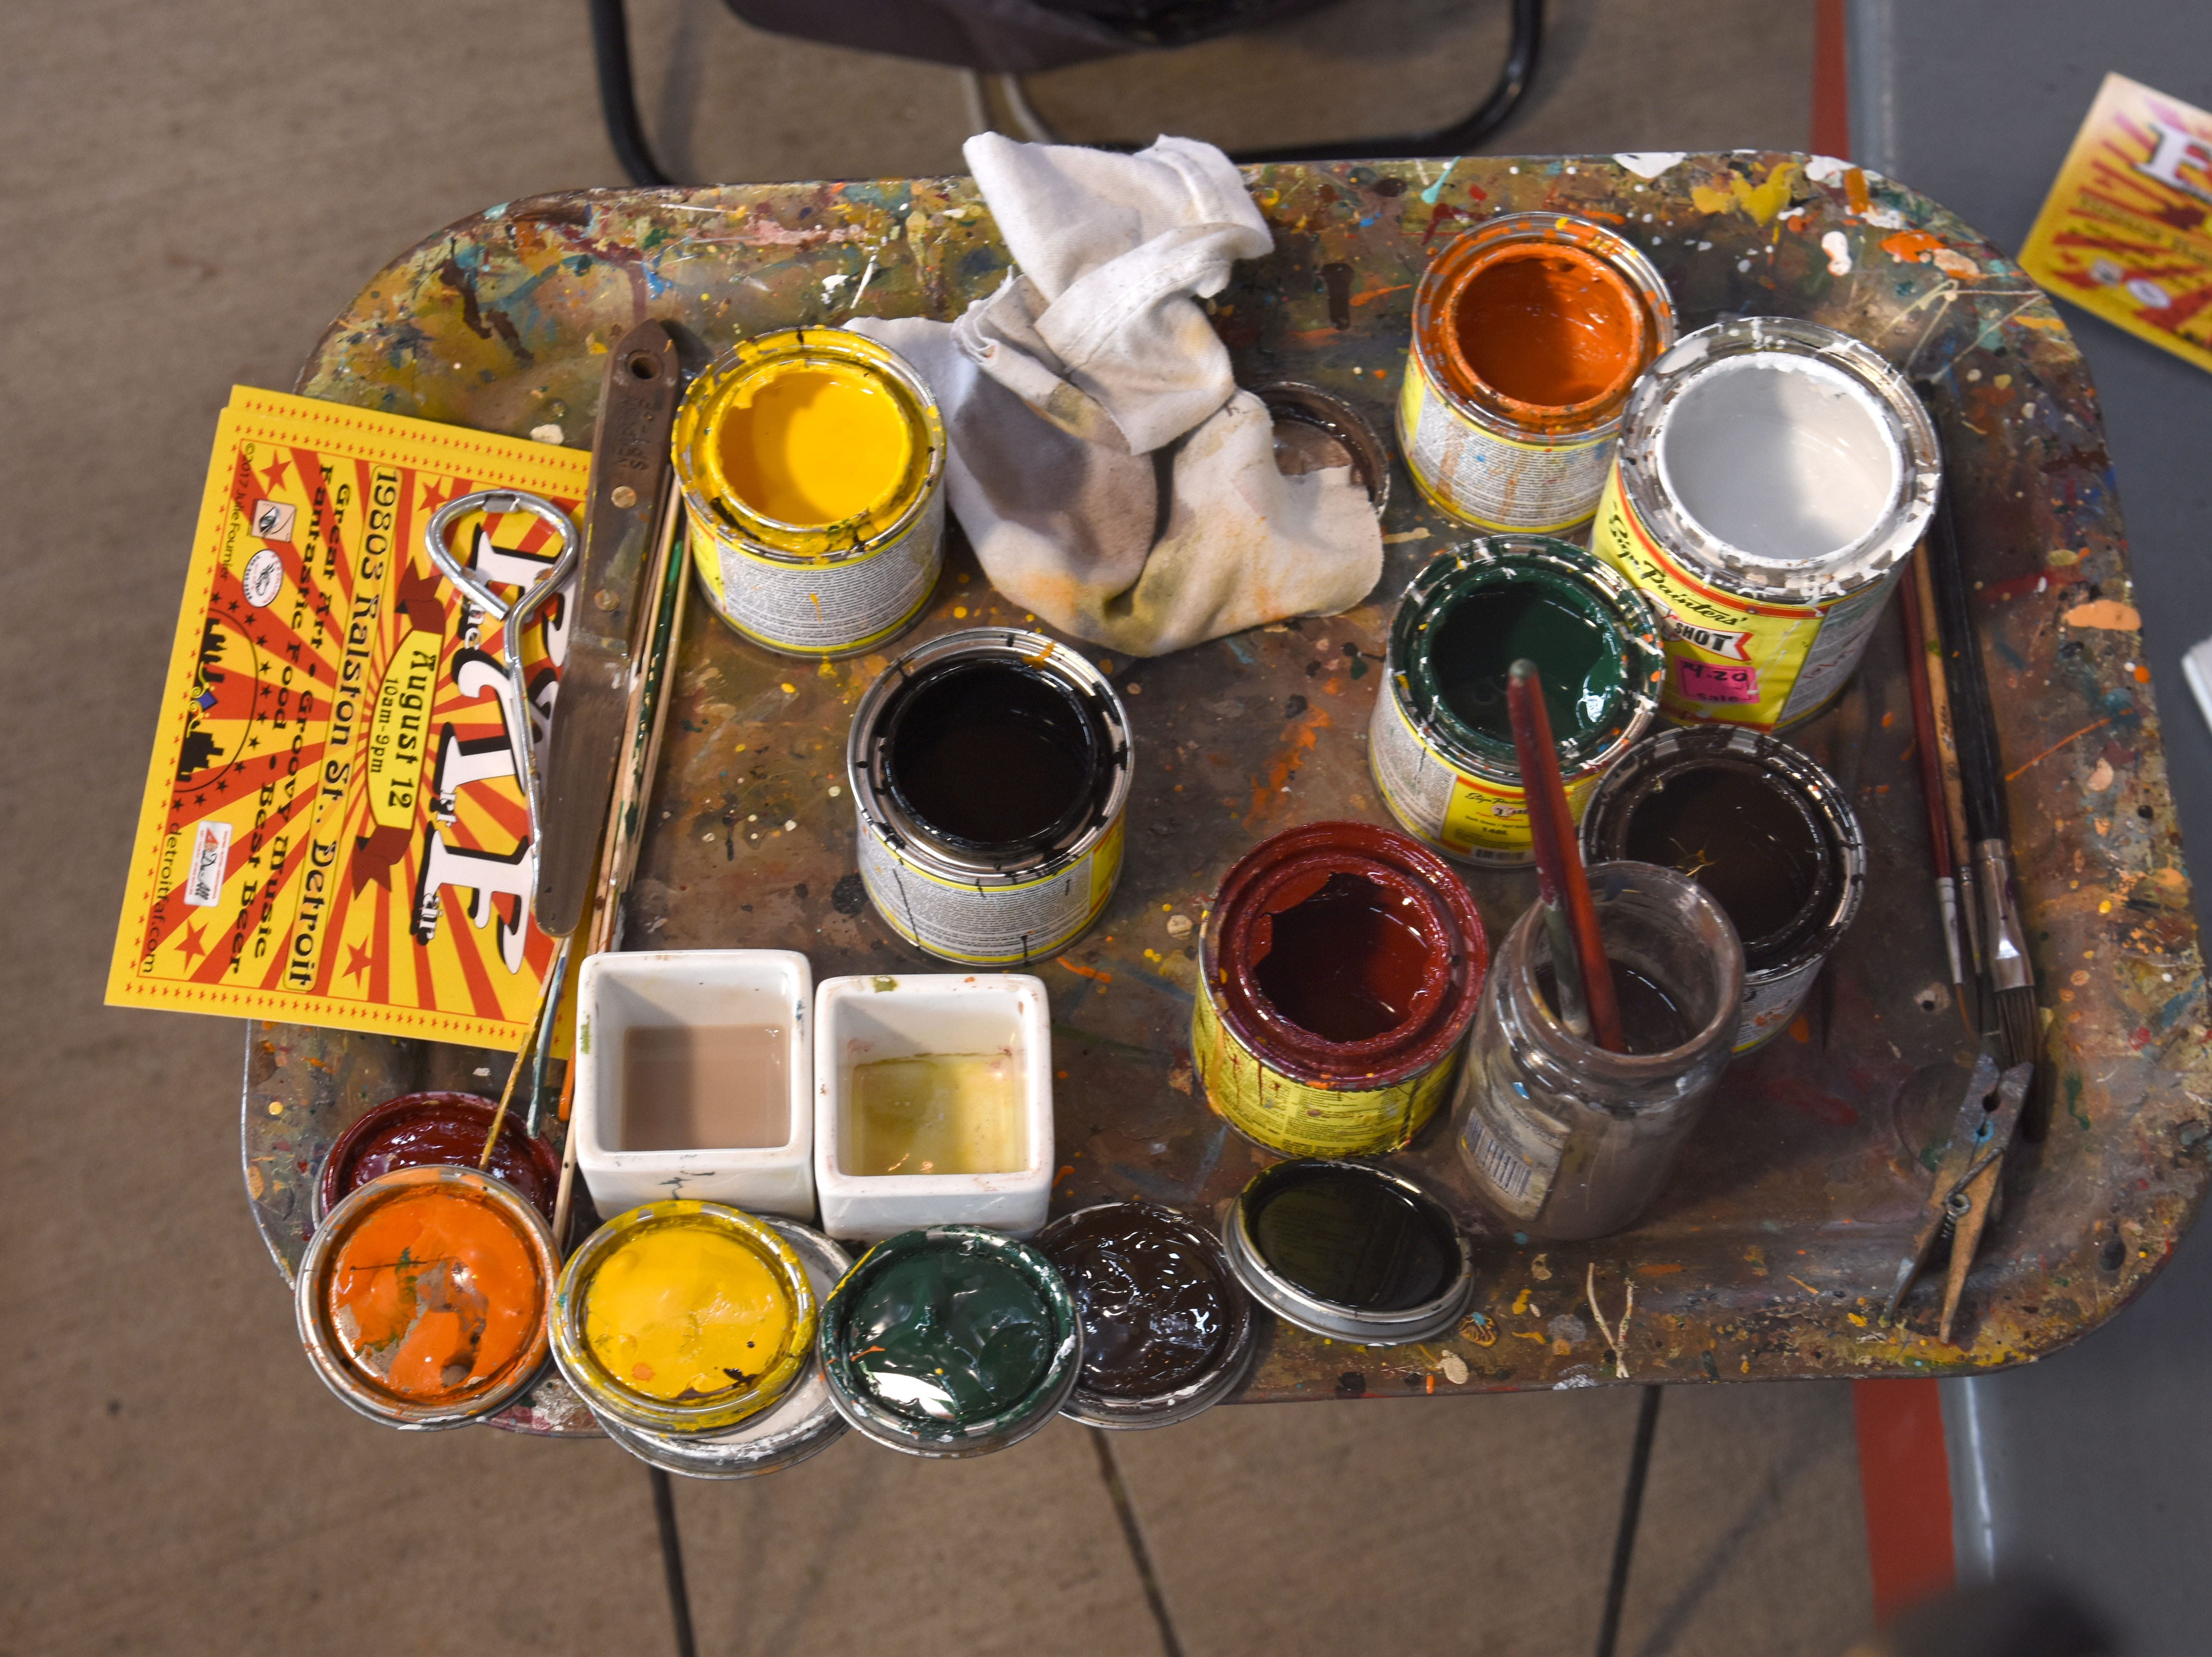 Small paint cans are part of Julie Fournier's palette of colors during there restoration of carousel figures.